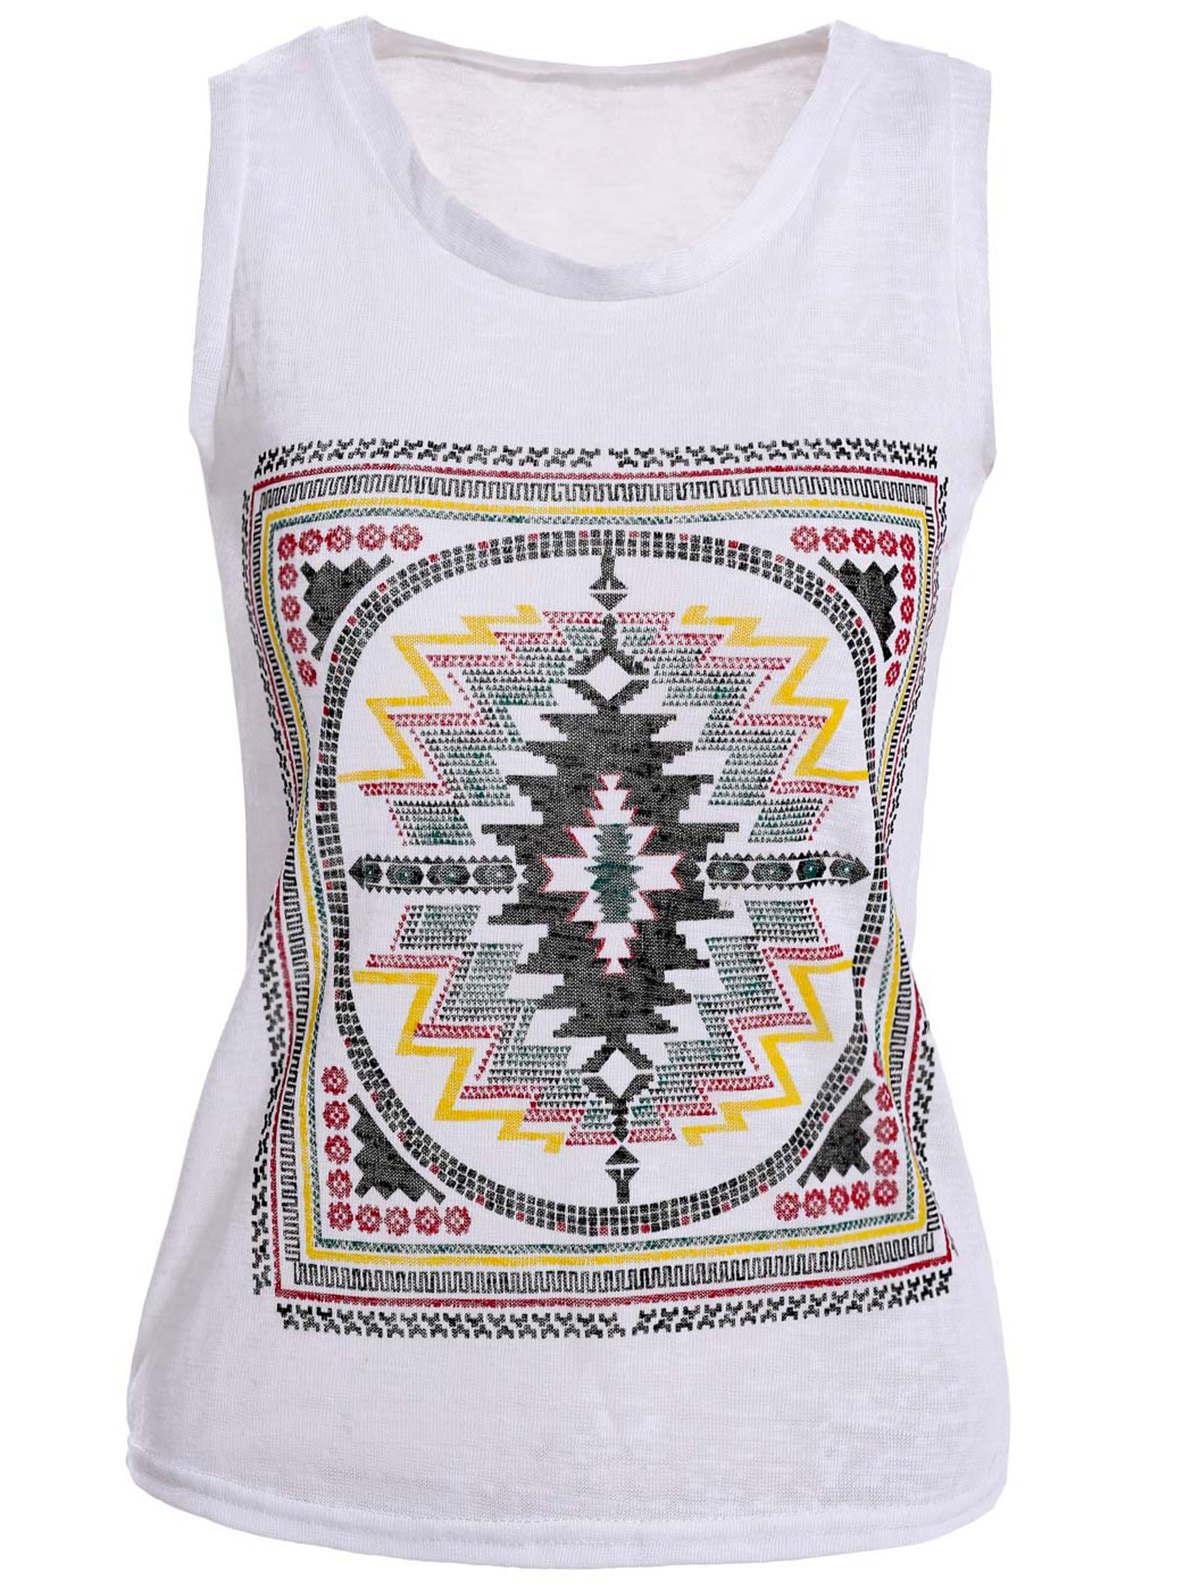 Embroidery Design Sleeveless Scoop Neck Loose Tank Top - WHITE ONE SIZE